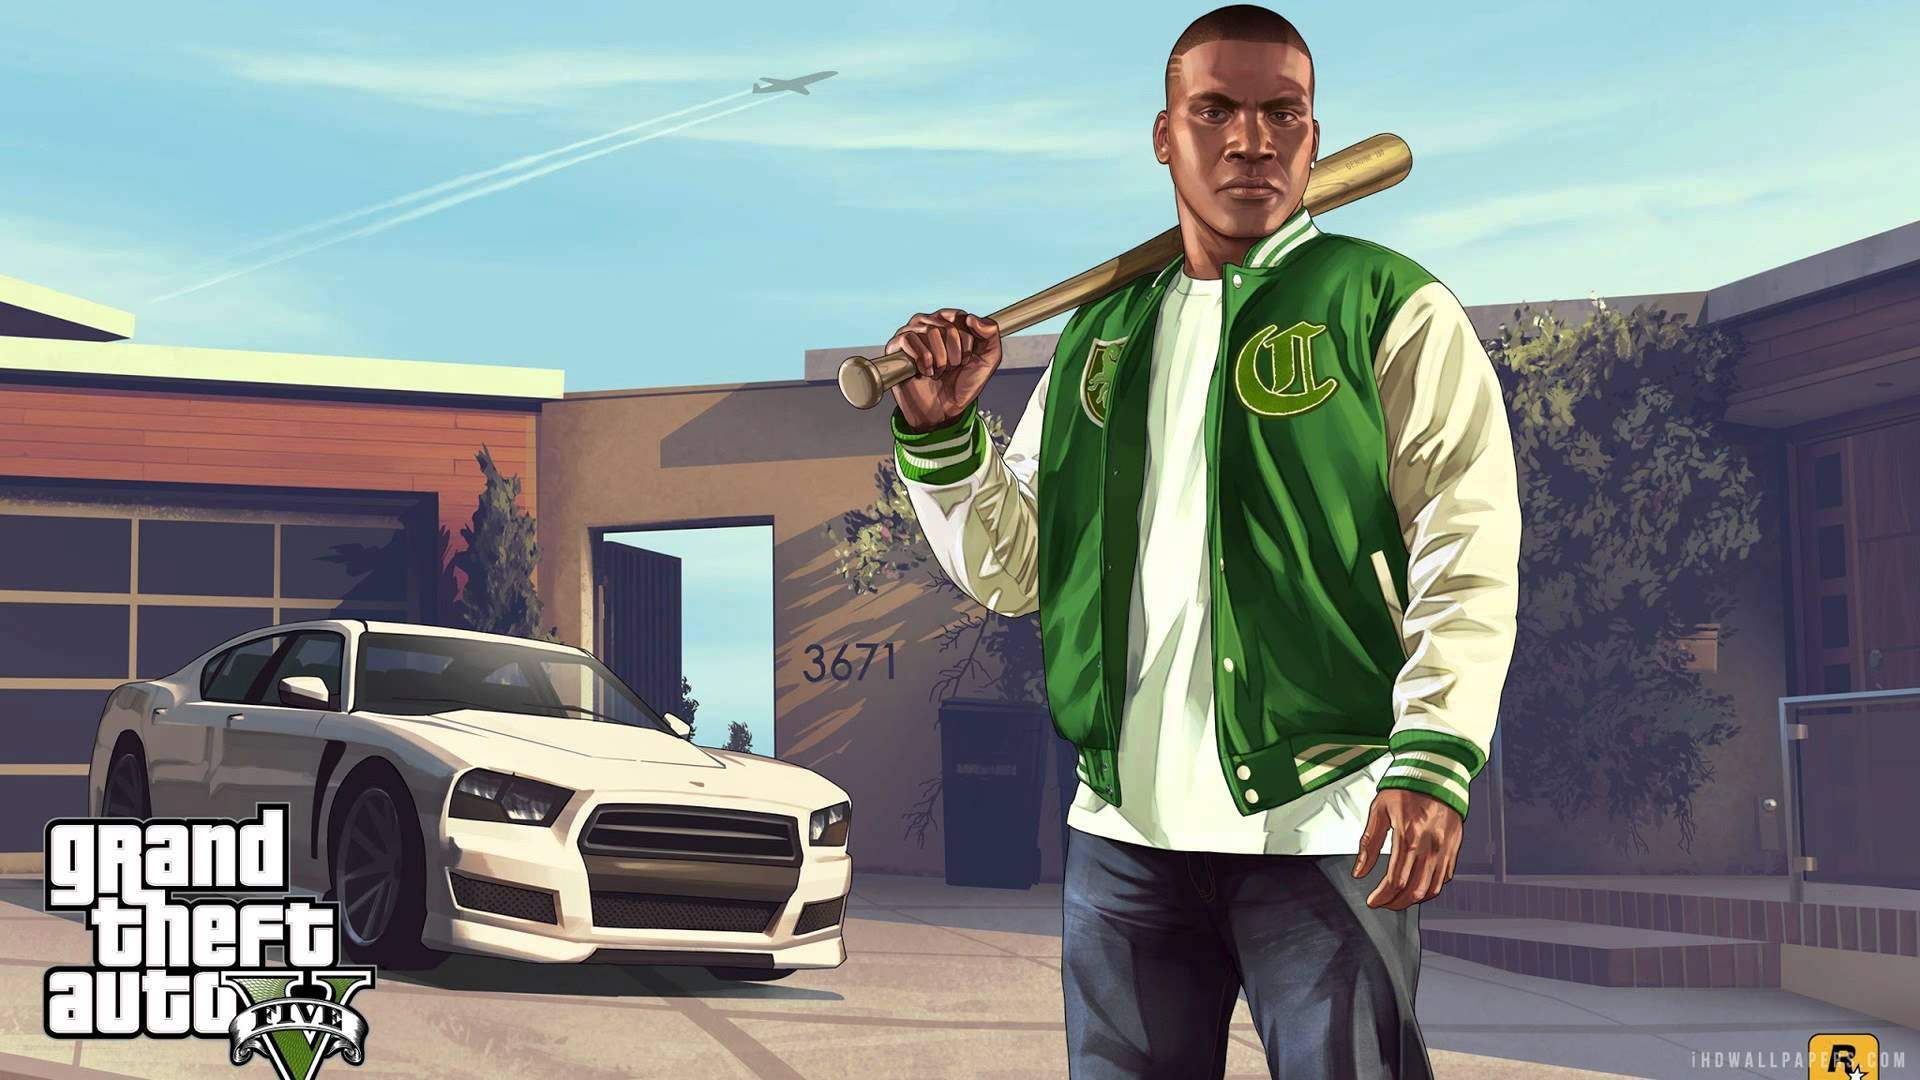 Grand theft auto v wallpapers wallpaper cave - Gta v wallpaper ...